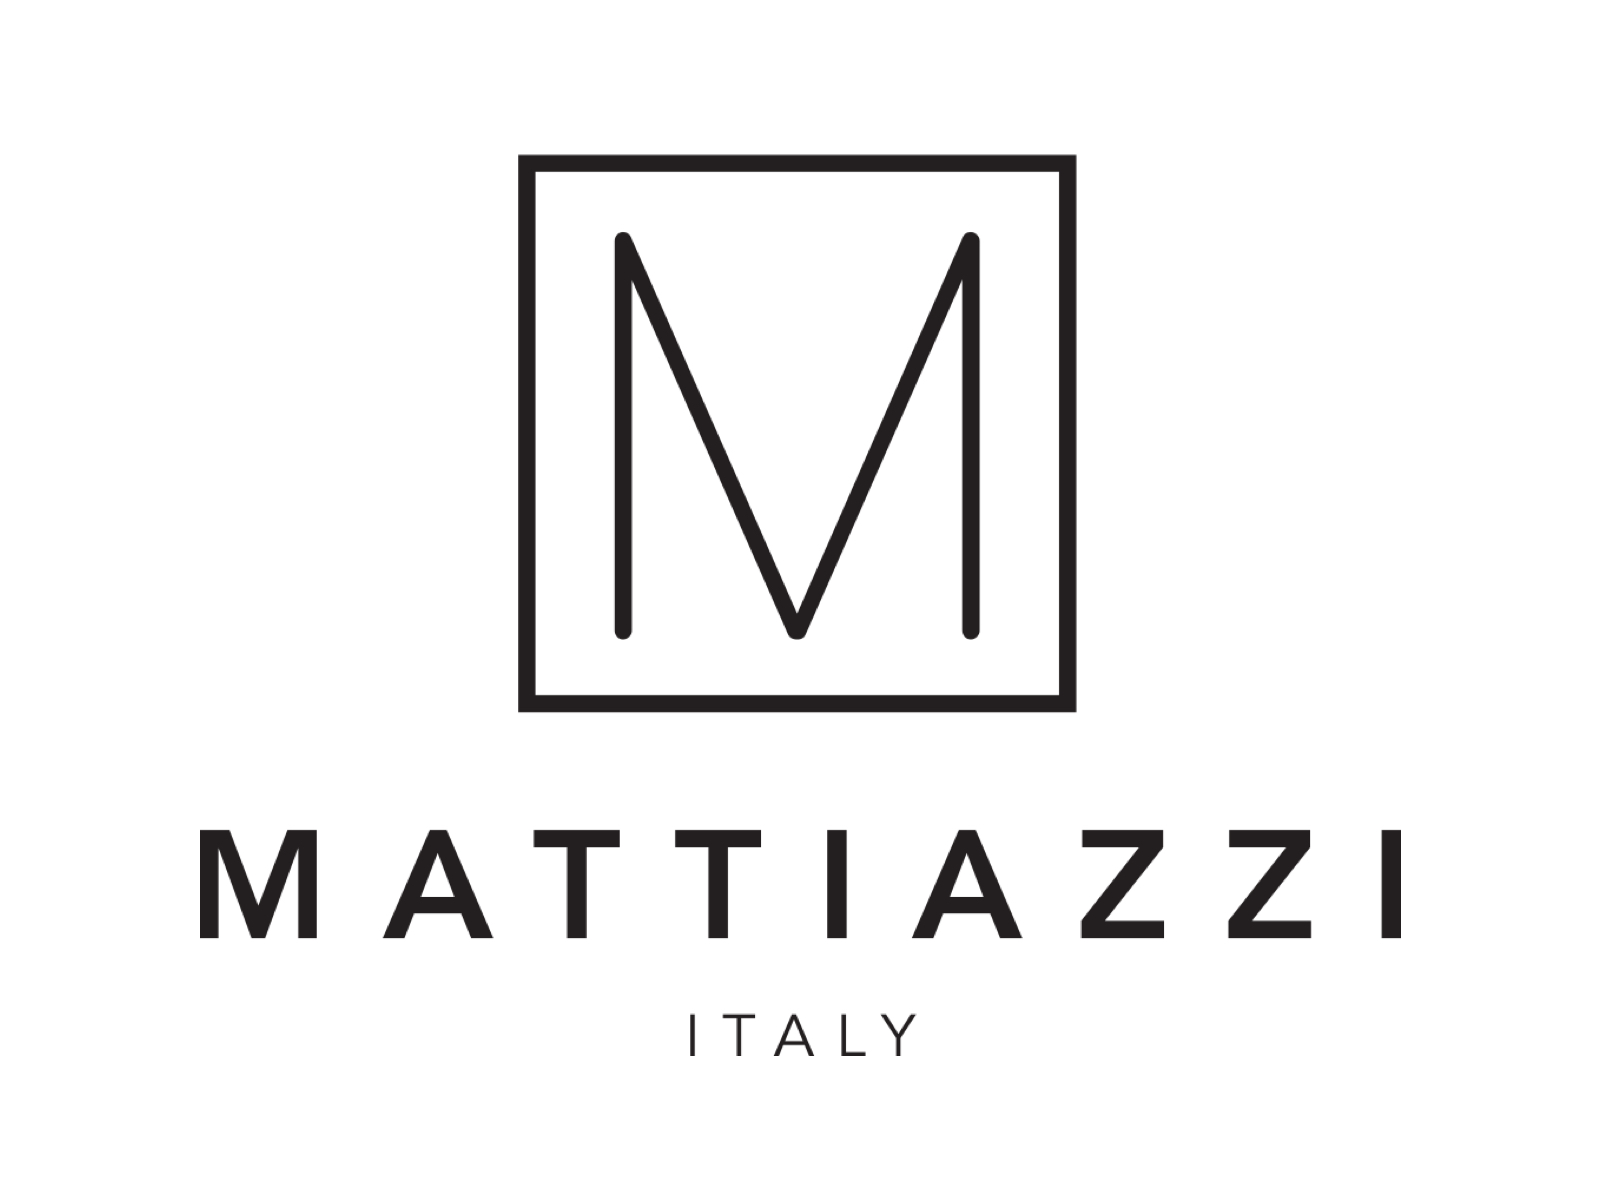 The Mattiazzi logo.